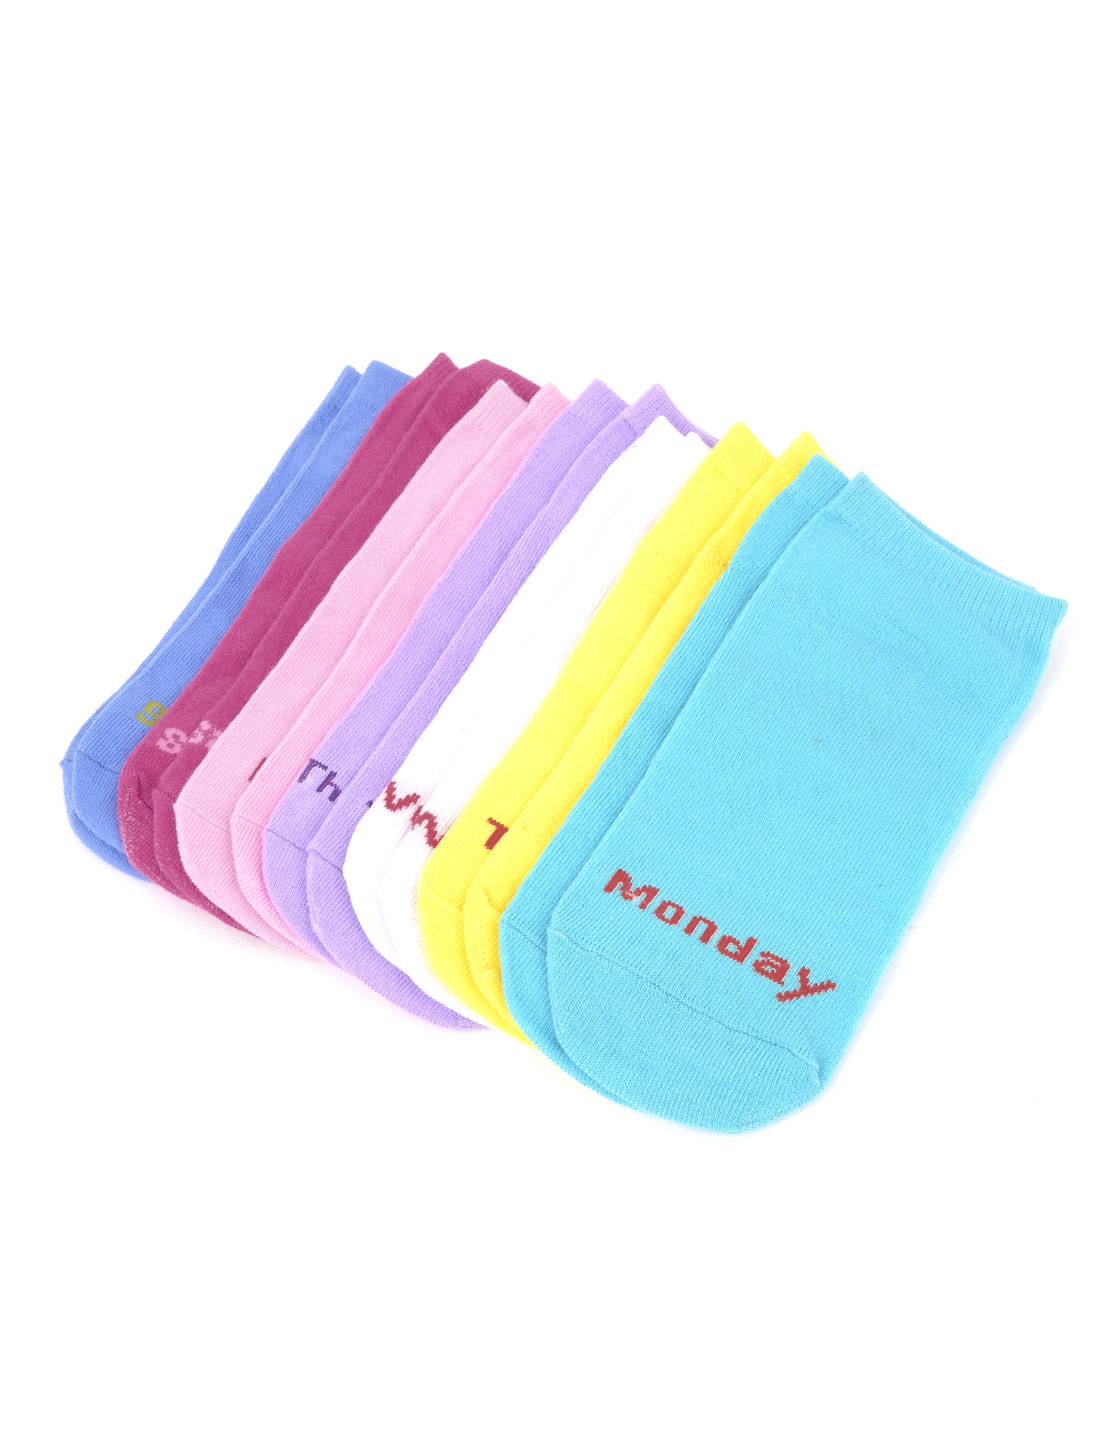 7 Pairs Stretchy Cuff Letter Print Casual Ankle Socks Multicolor for Lady